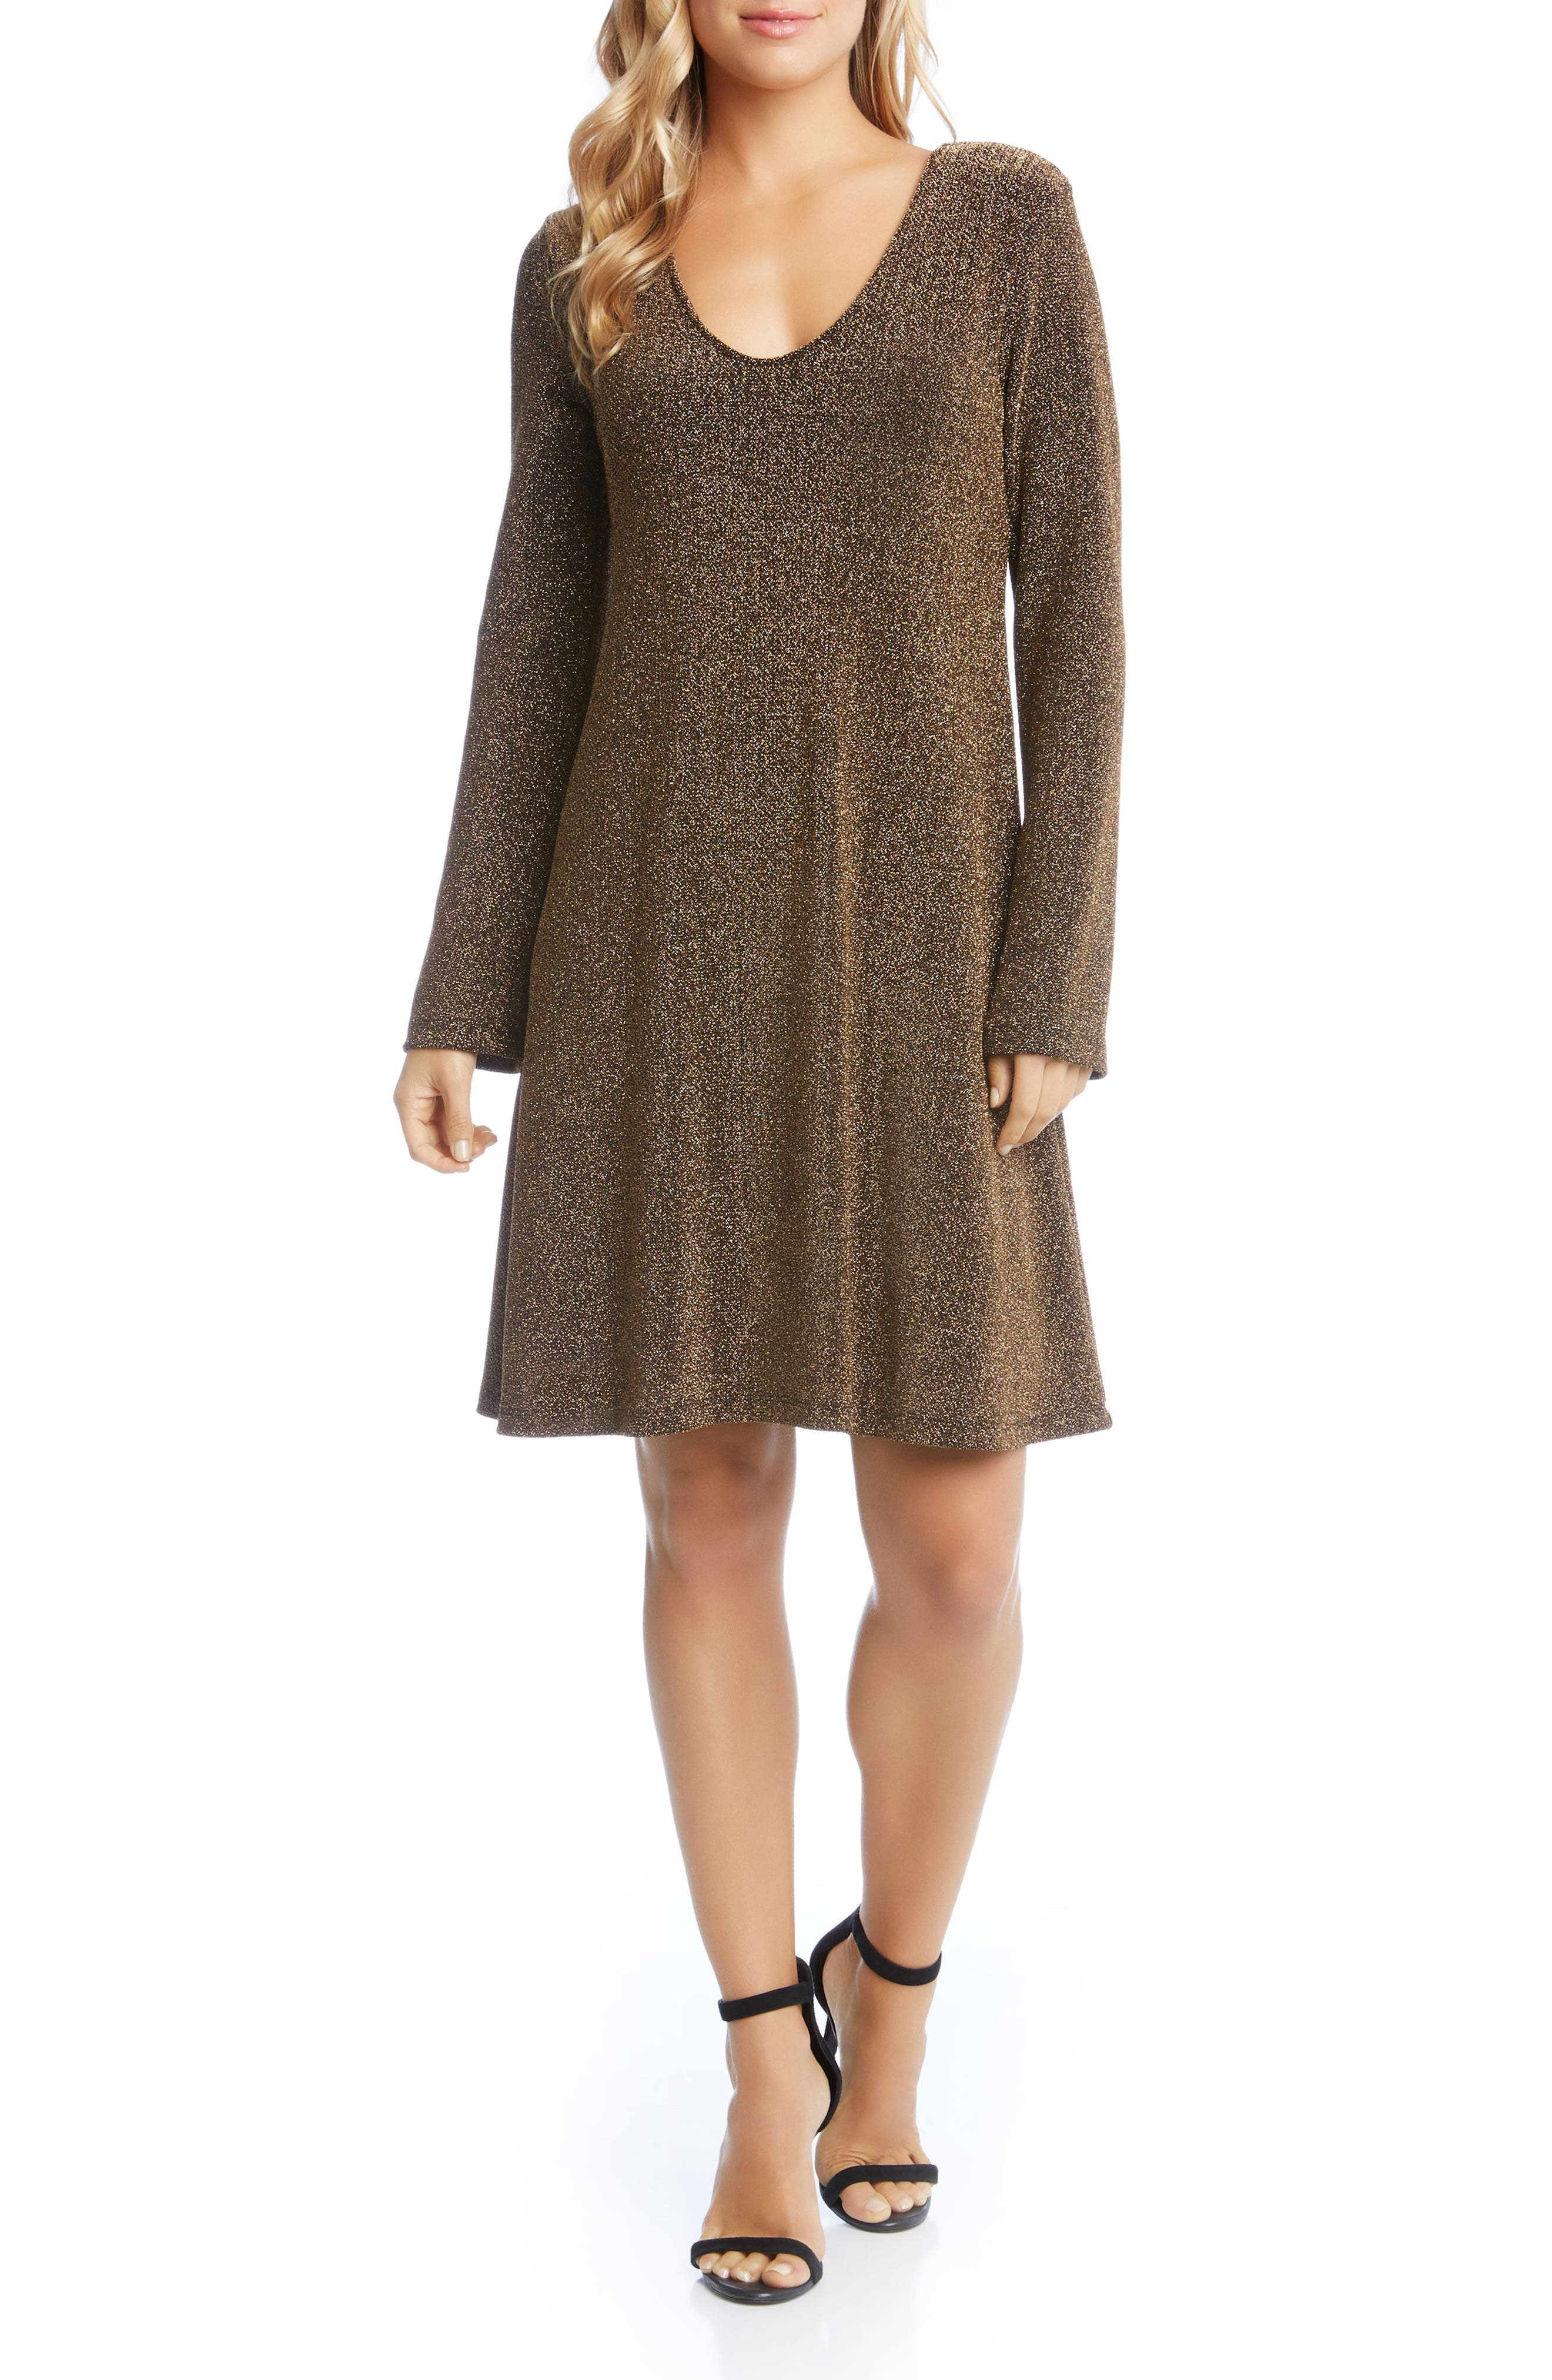 Alternate Image 1 Selected - Karen Kane Gold Knit Taylor Dress